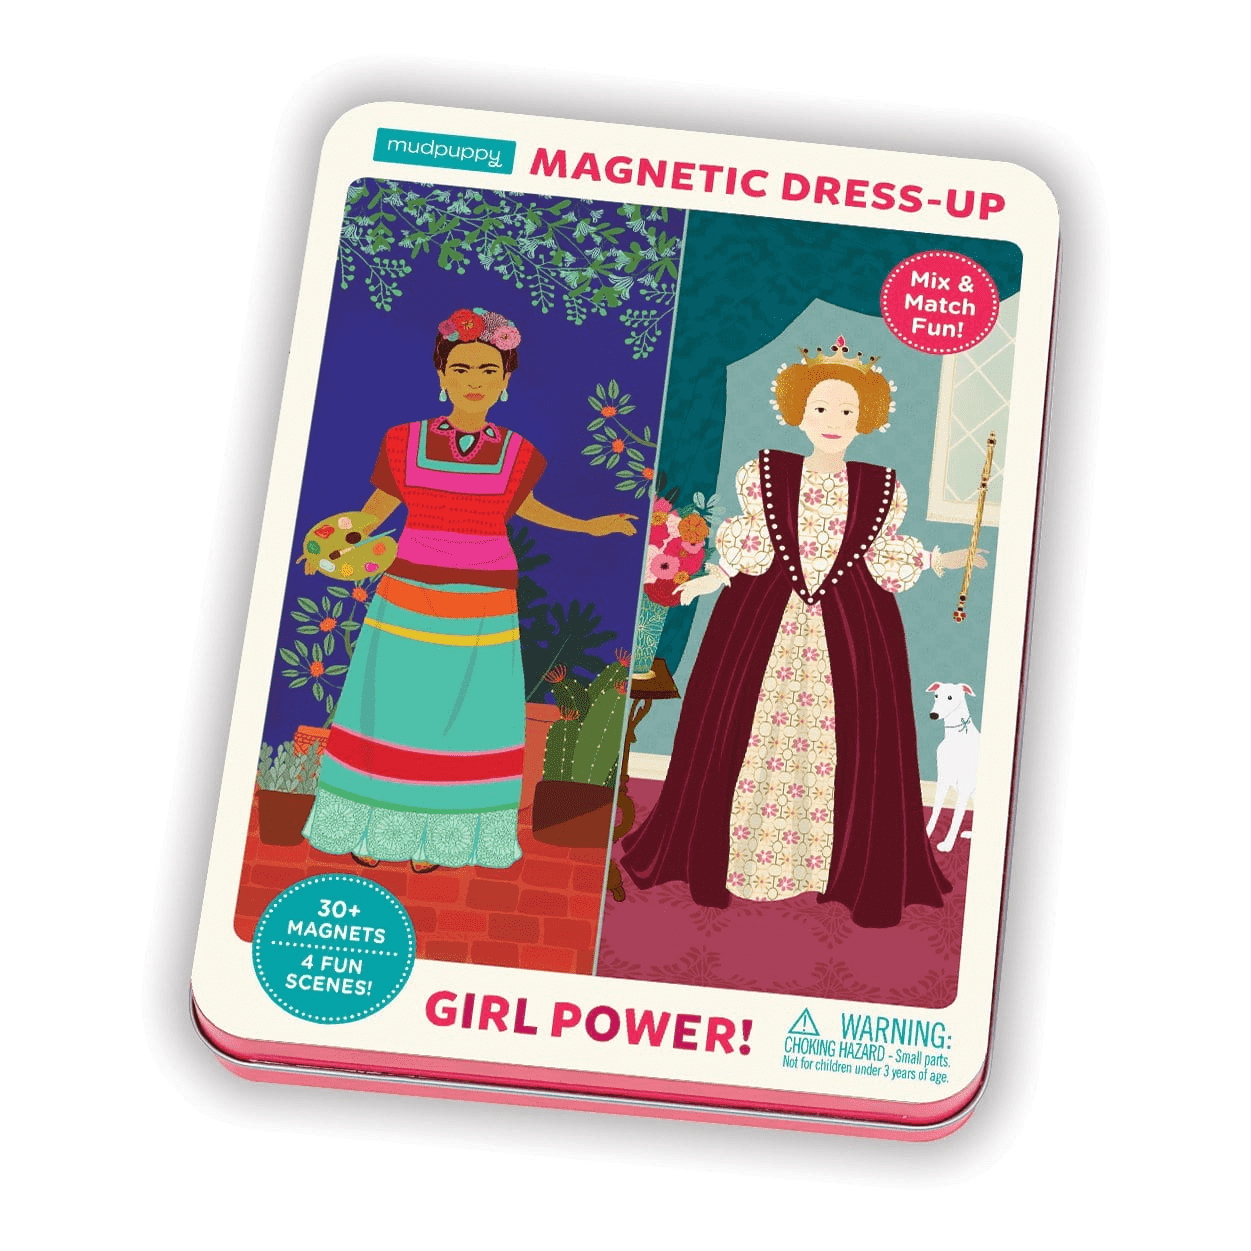 Girl Power! Magnetic Dress-up Magnetic Tin Playsets Mudpuppy